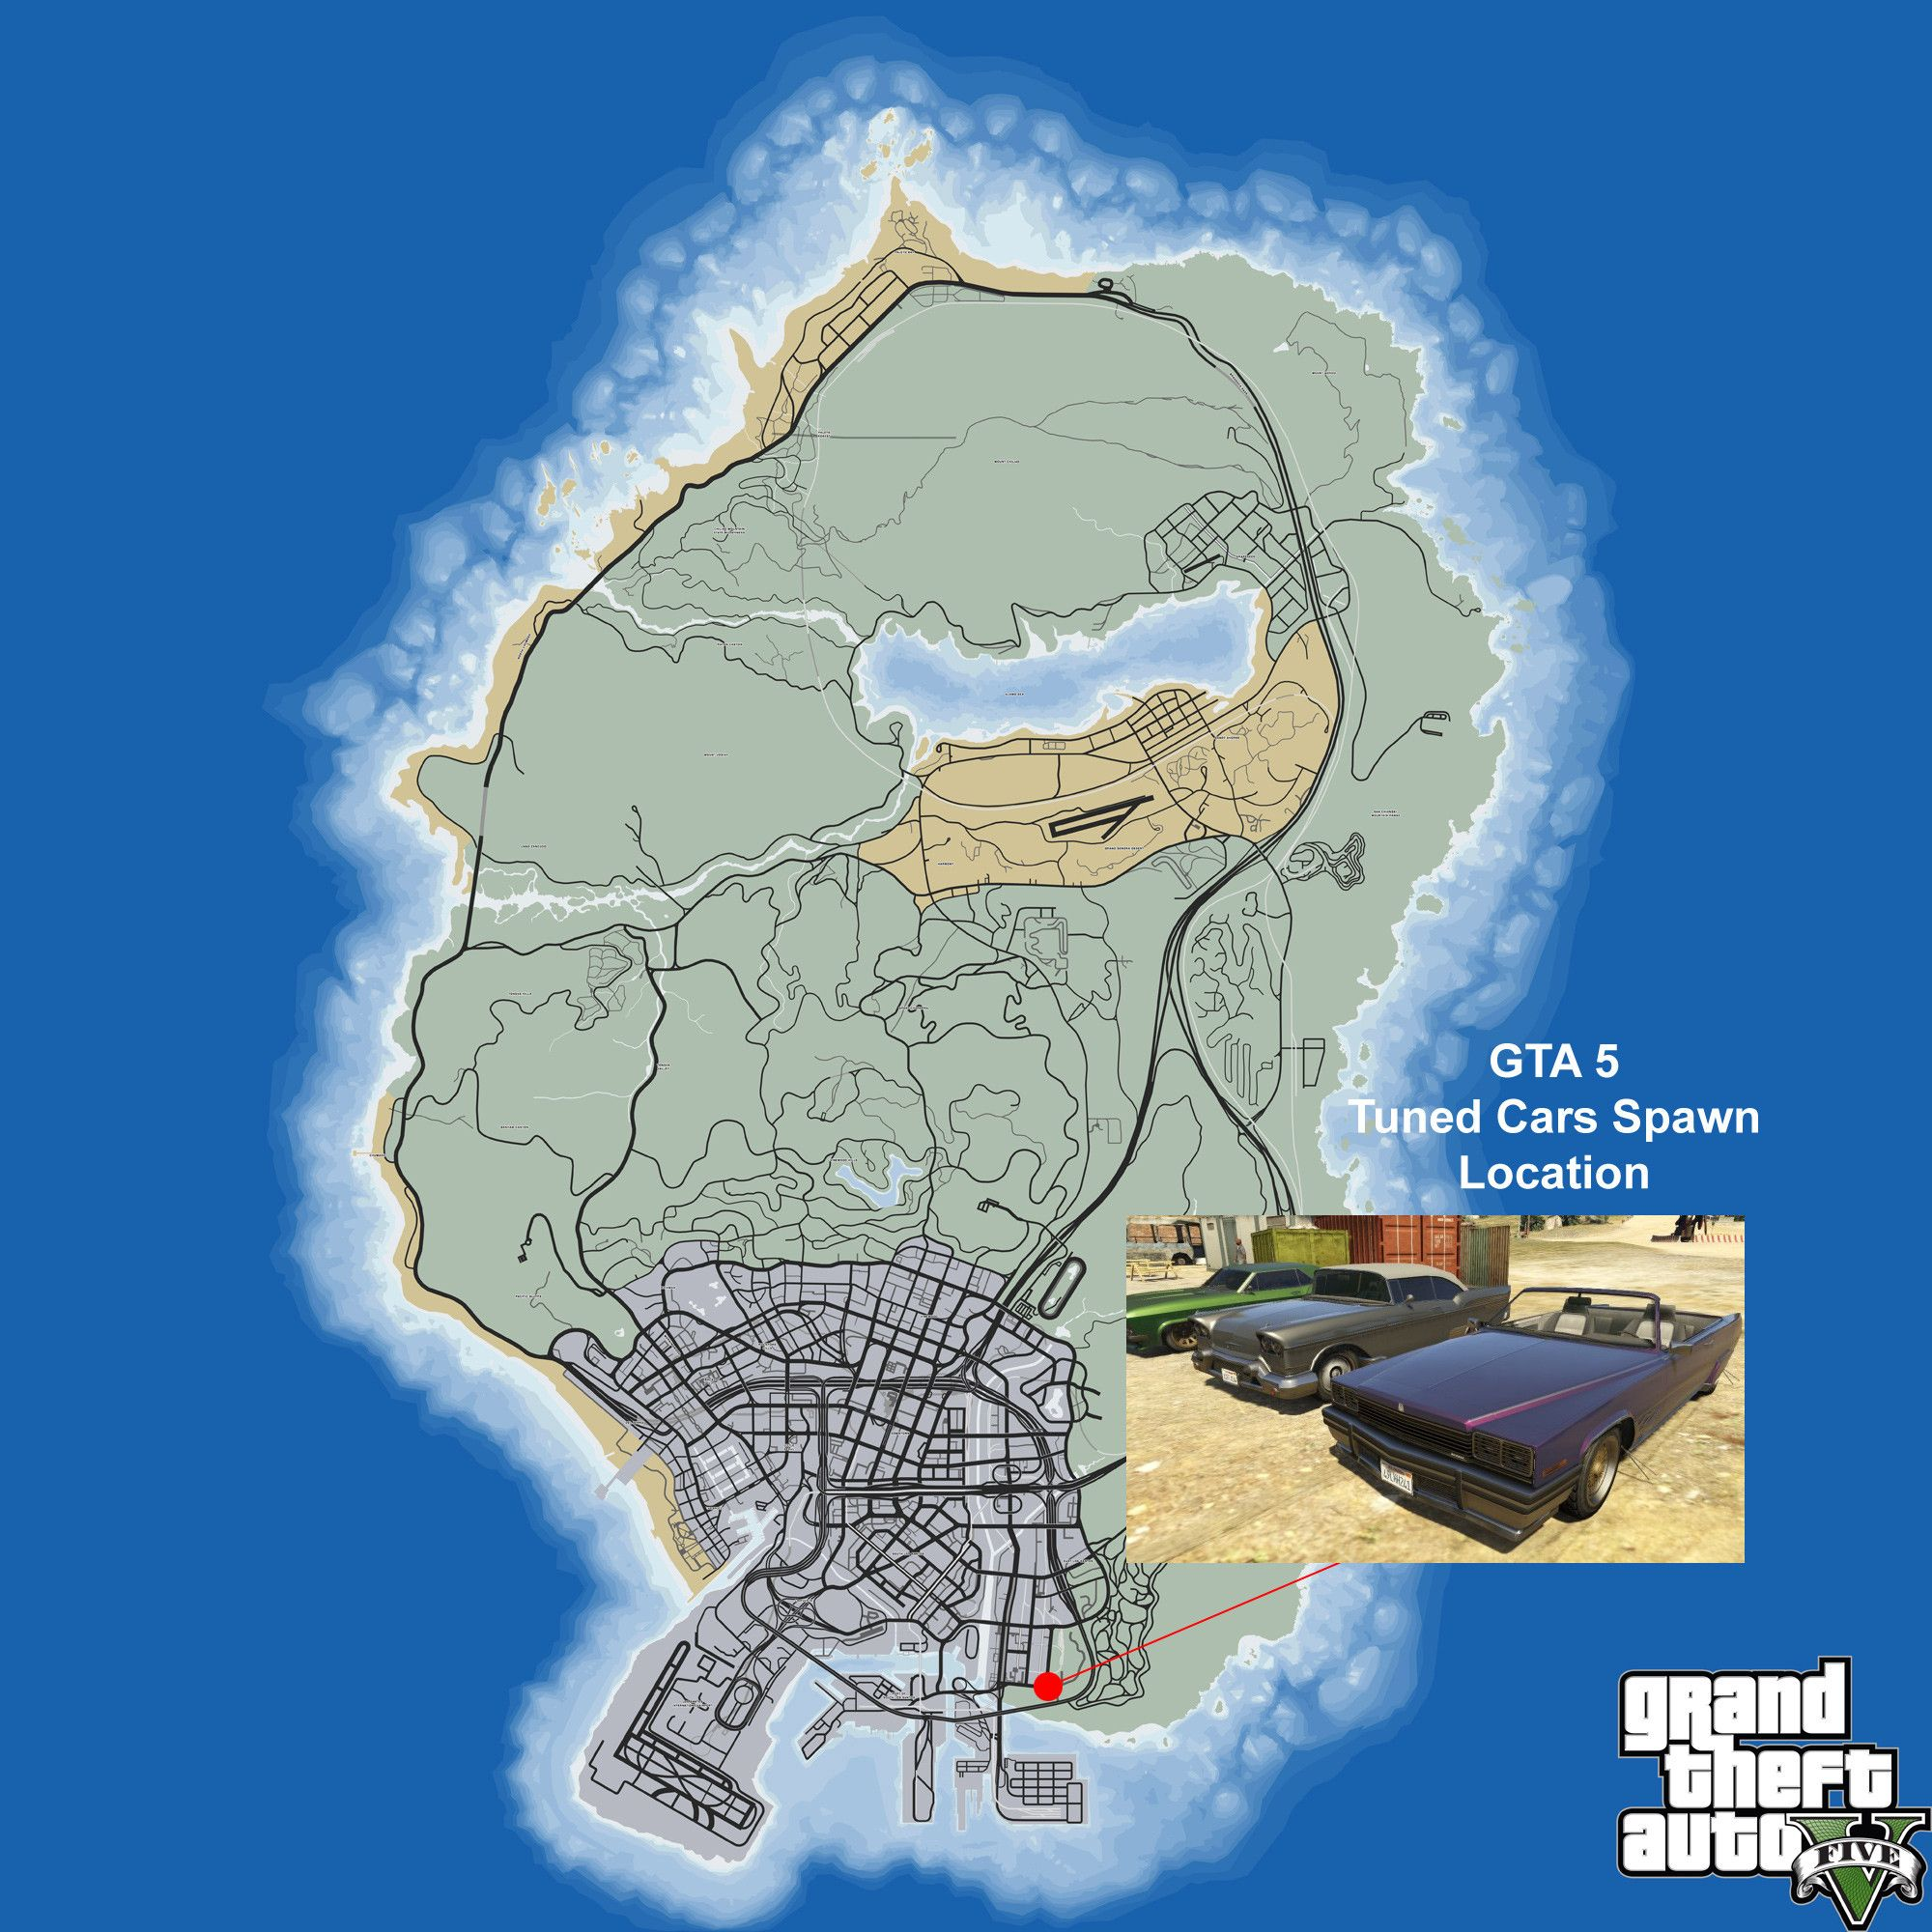 Gta V Tuned Cars Spawn Video Games Gta Grand Theft Auto Gta 5